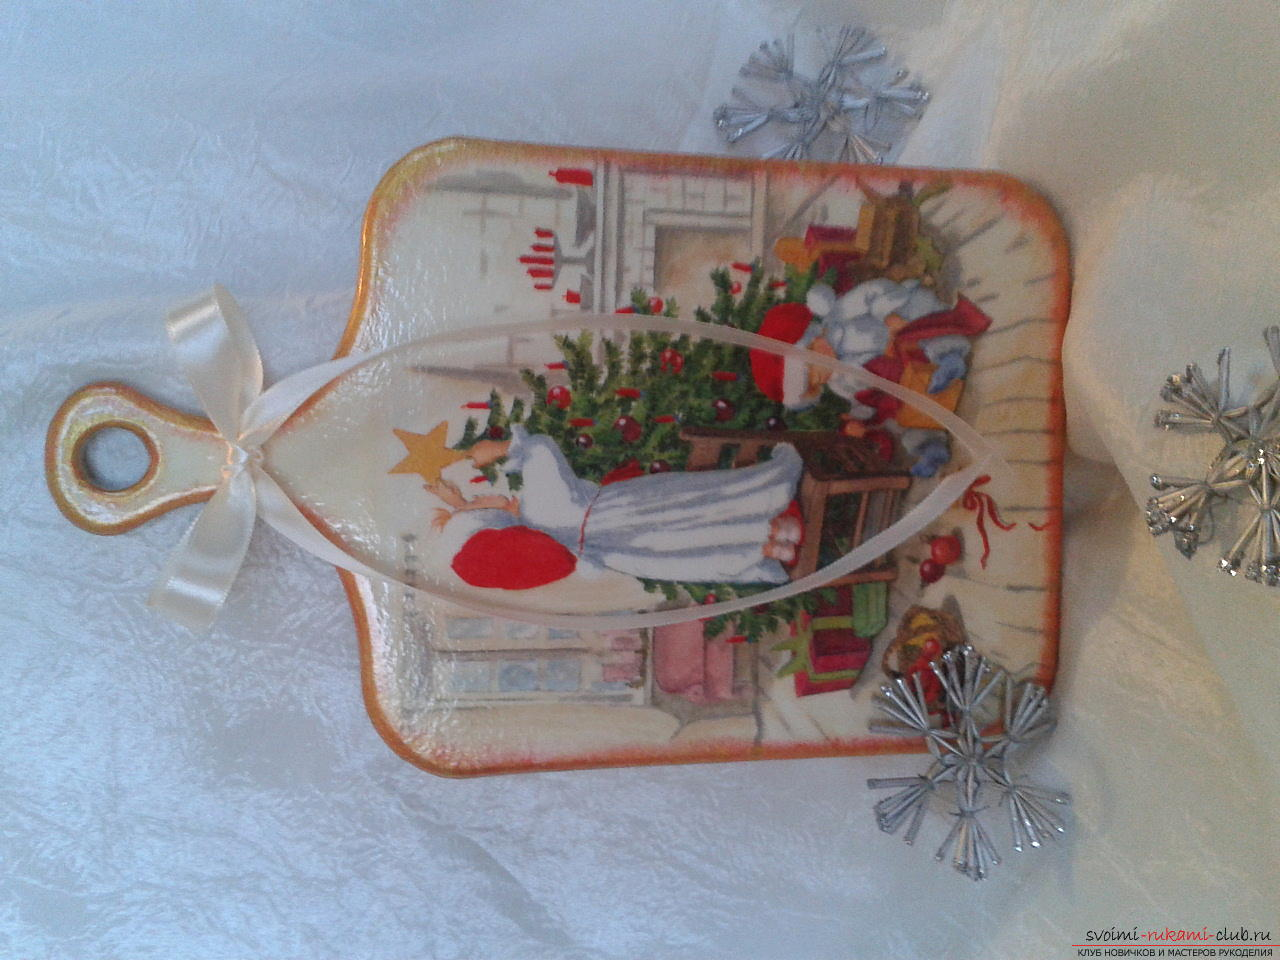 Photo to the lesson on the creation of a New Year's gift - cutting-edge dossacks in the technique of decoupage. Photo №8